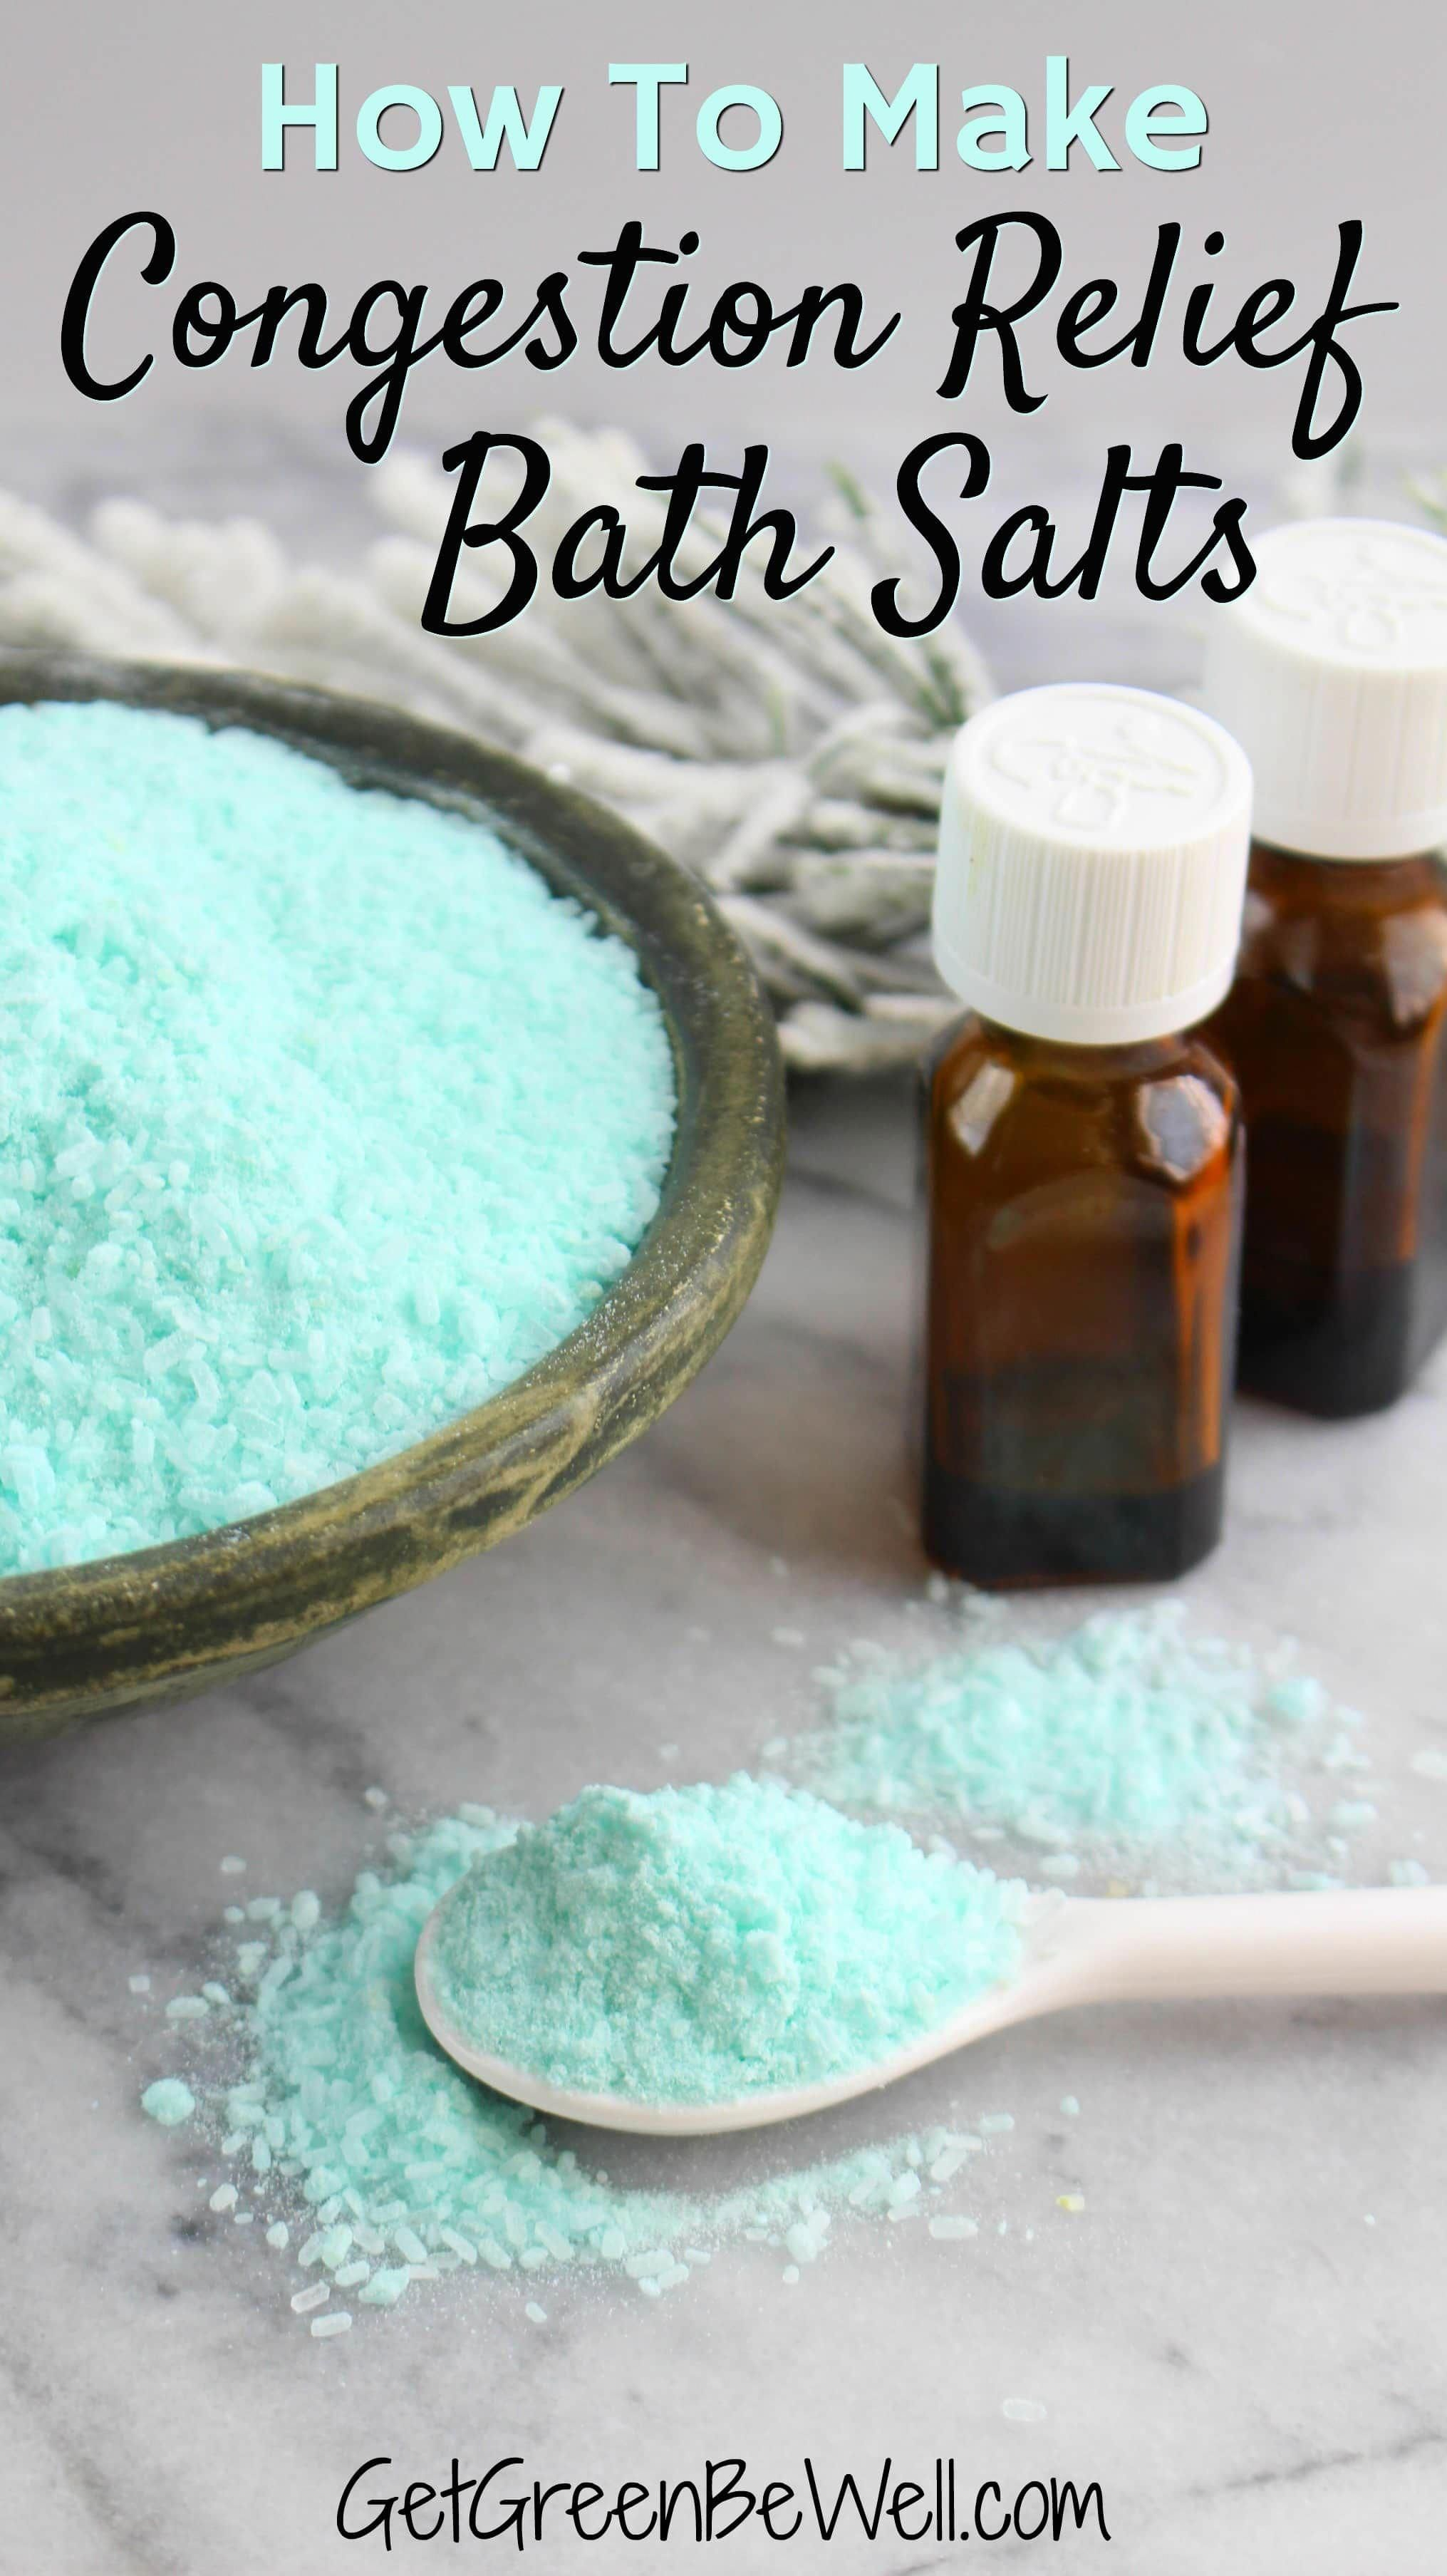 Breathe easier right now by adding these bath salts to a hot bath. With natural vapors from essential oils, plus powerful detoxing properties, you could speed healing and feel better with this DIY Sinus Congestion Relief Bath Salts Recipe made from ingredients you can find at your drugstore! #naturalremedies #natural #naturalliving #greenliving #allnatural #coldweather #HealthAndTips